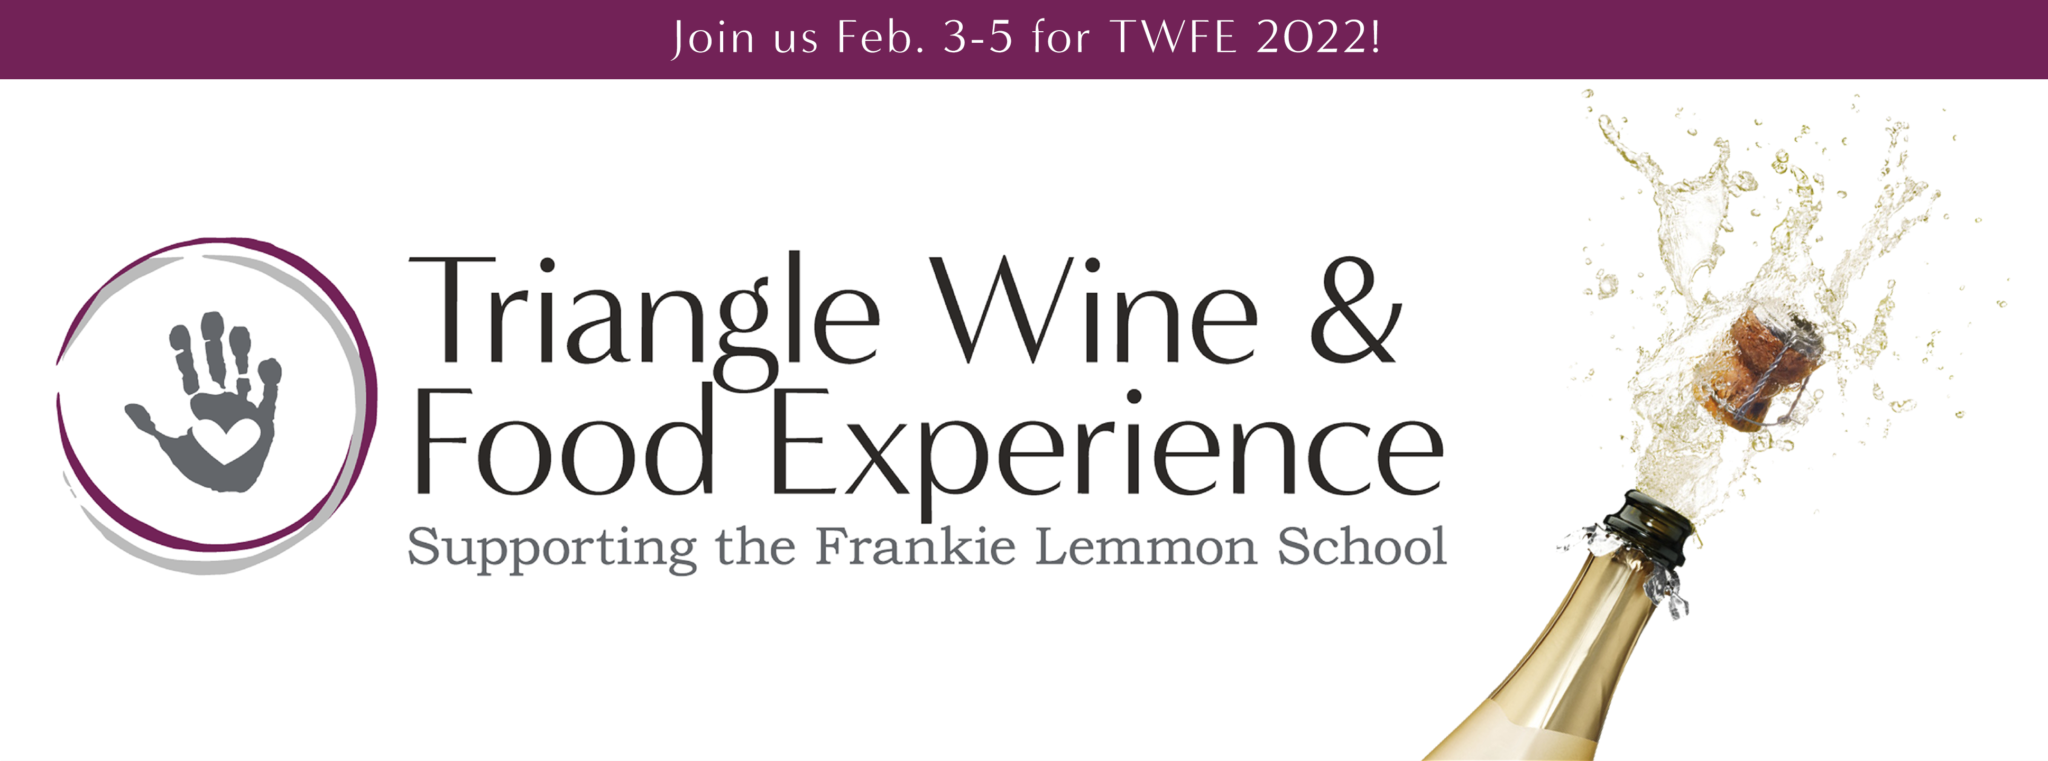 Join us Feb. 3-5, 2022!